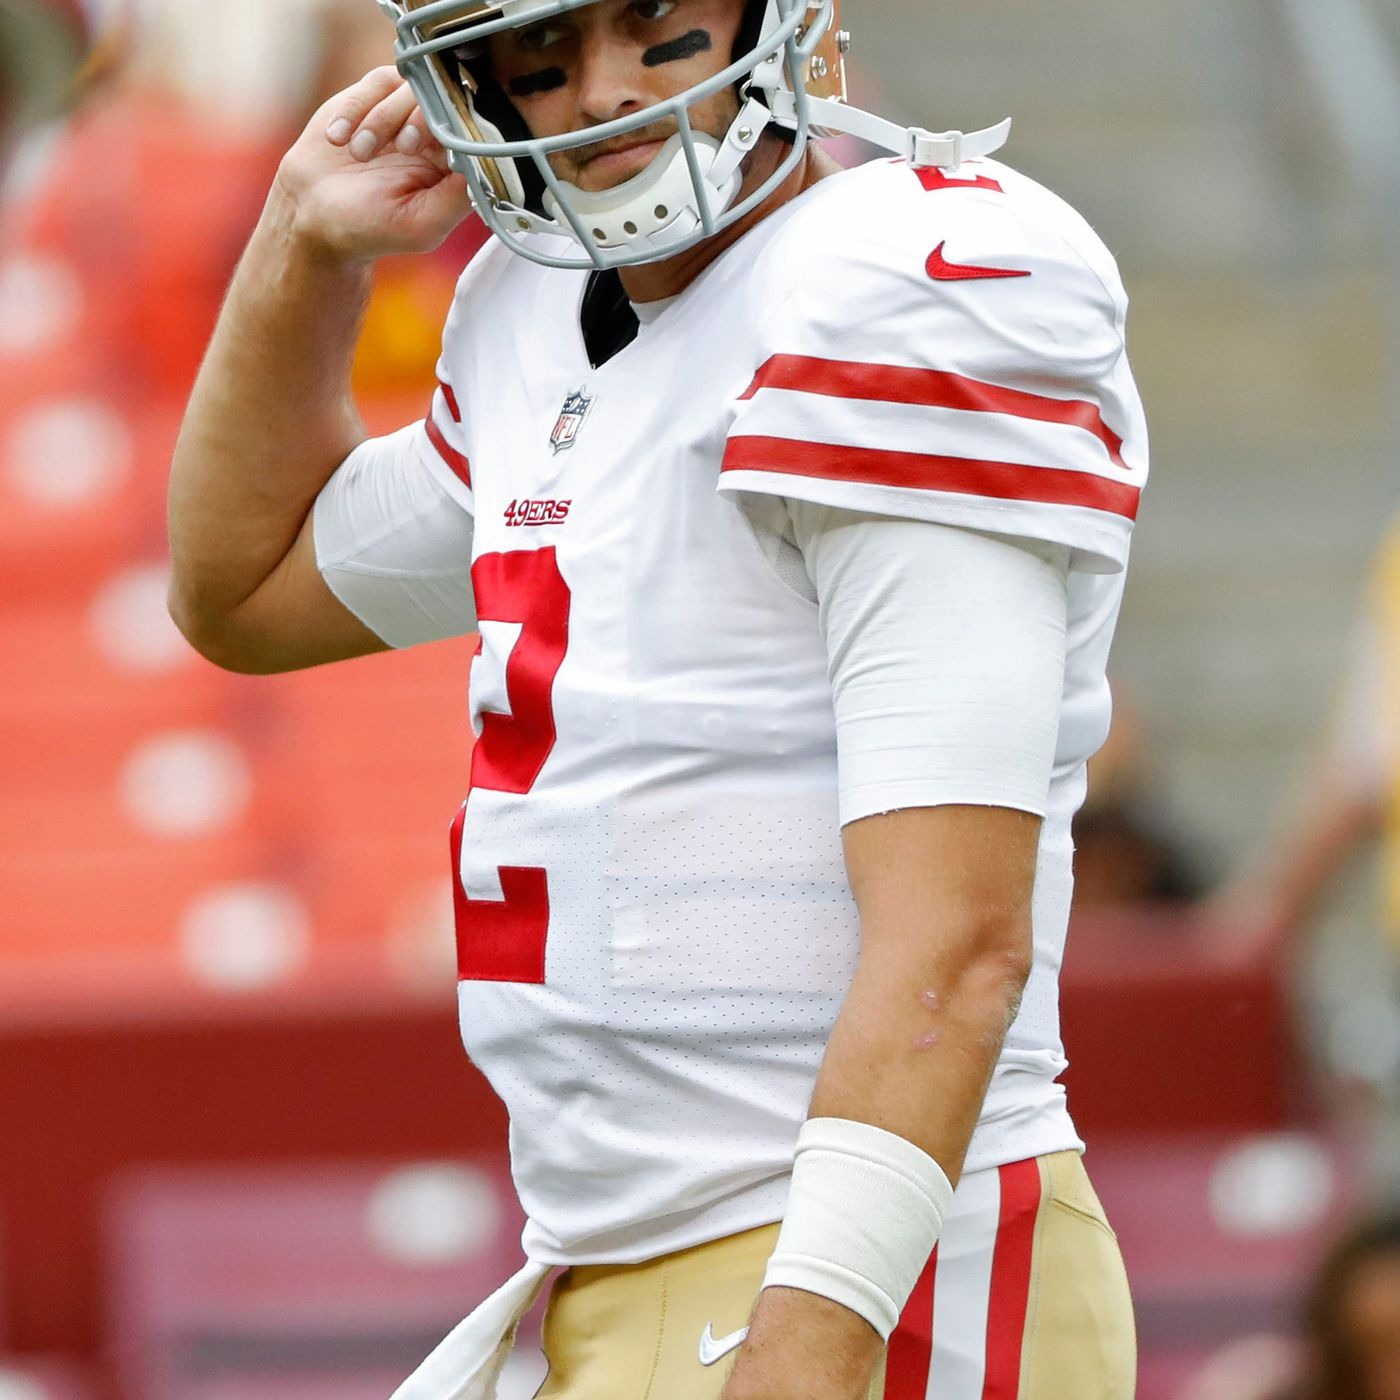 c71524402 Brian Hoyer Patriots contract includes minimal 49ers salary offset - Niners  Nation